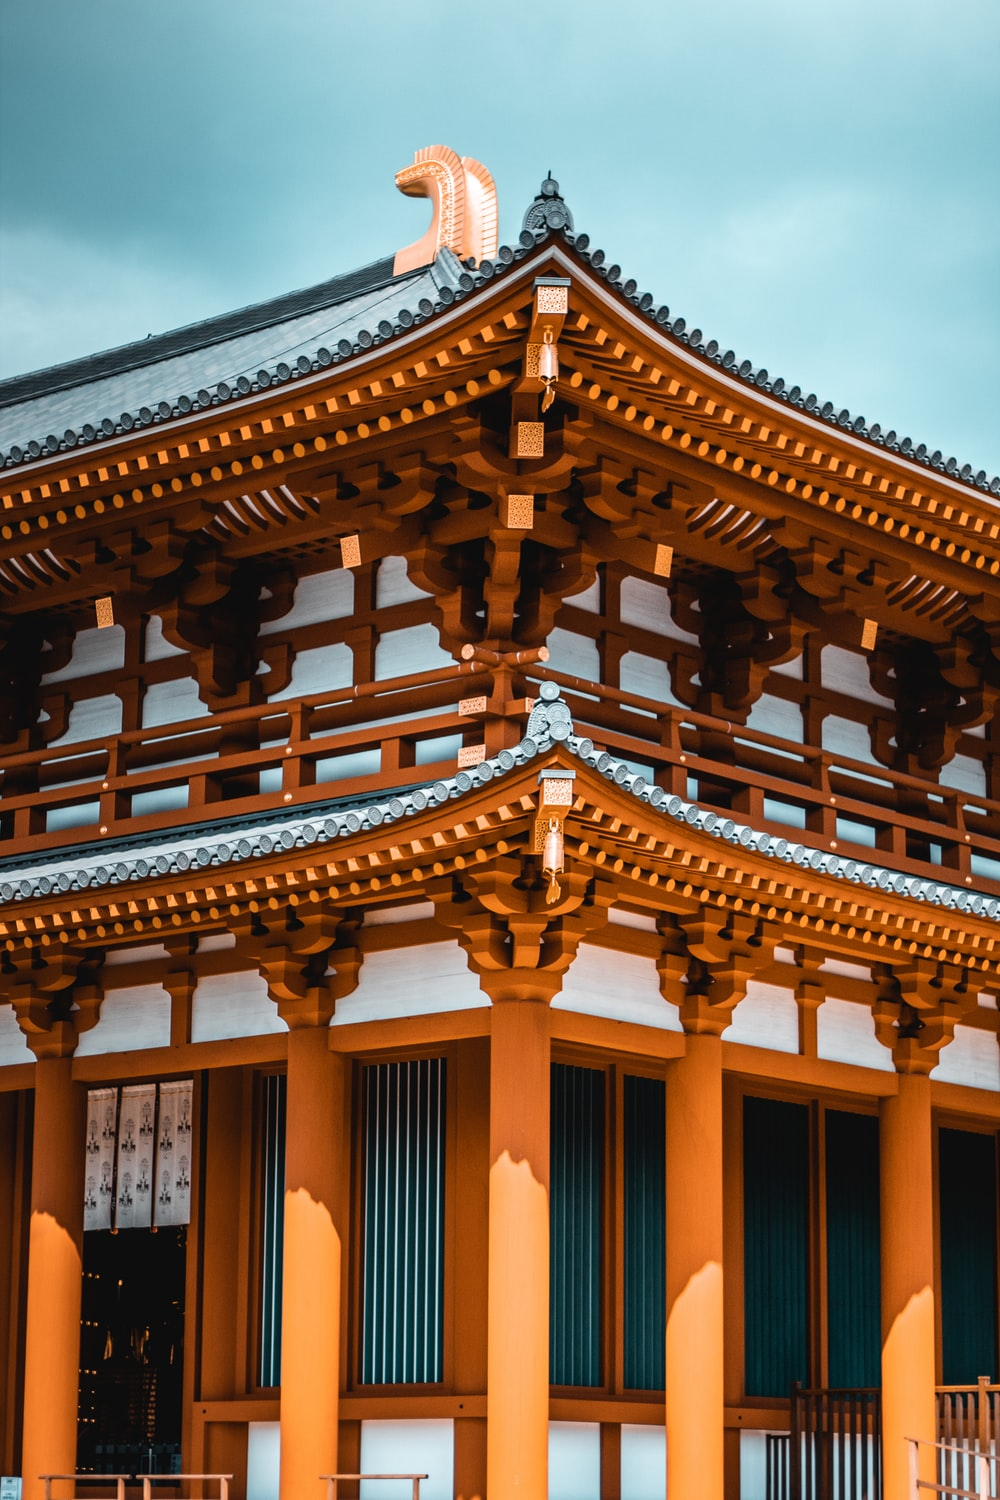 brown and white wooden temple during daytime